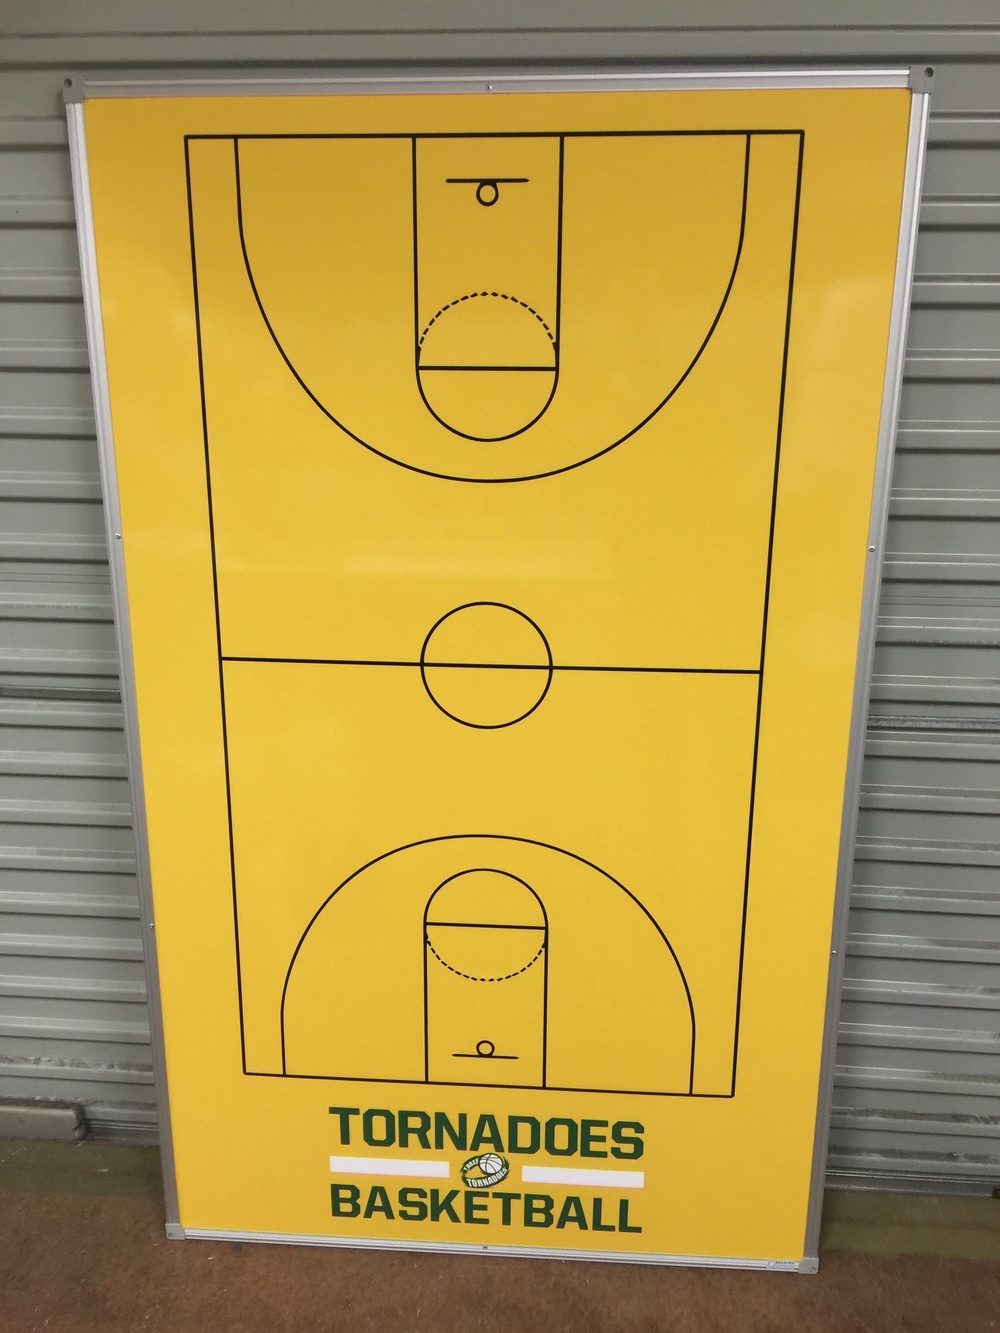 Tornadoes basketball Coaching Board